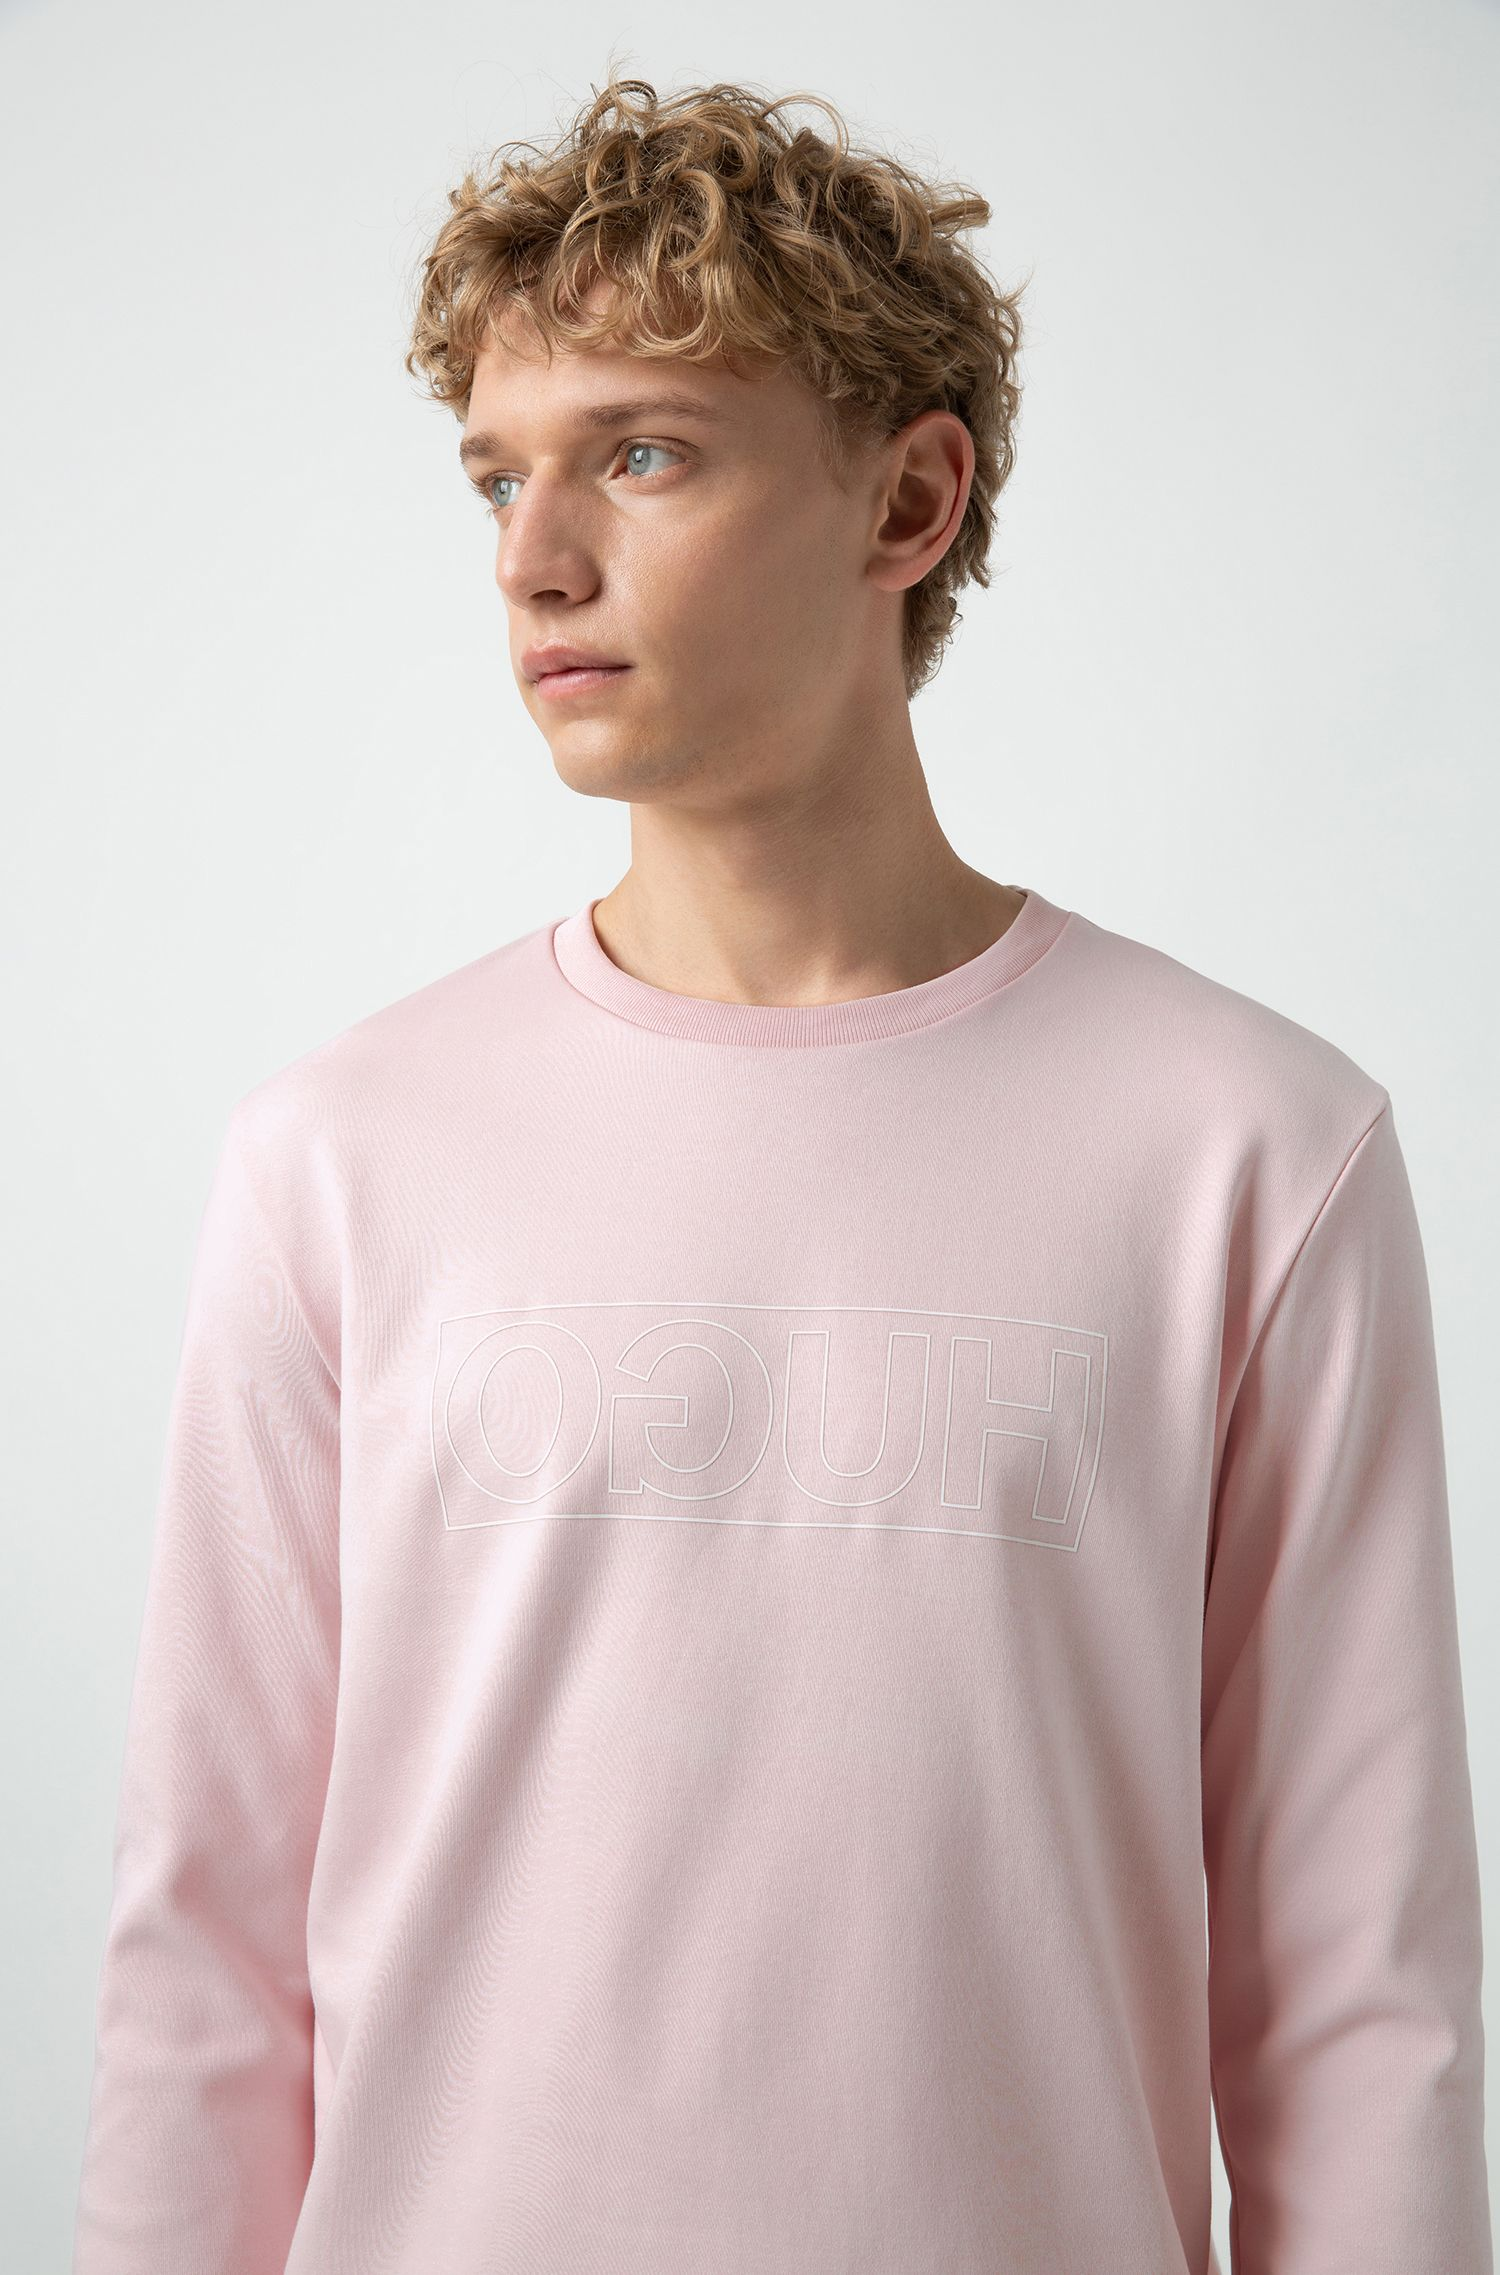 Sweat à logo inversé en coton interlock, Rose clair